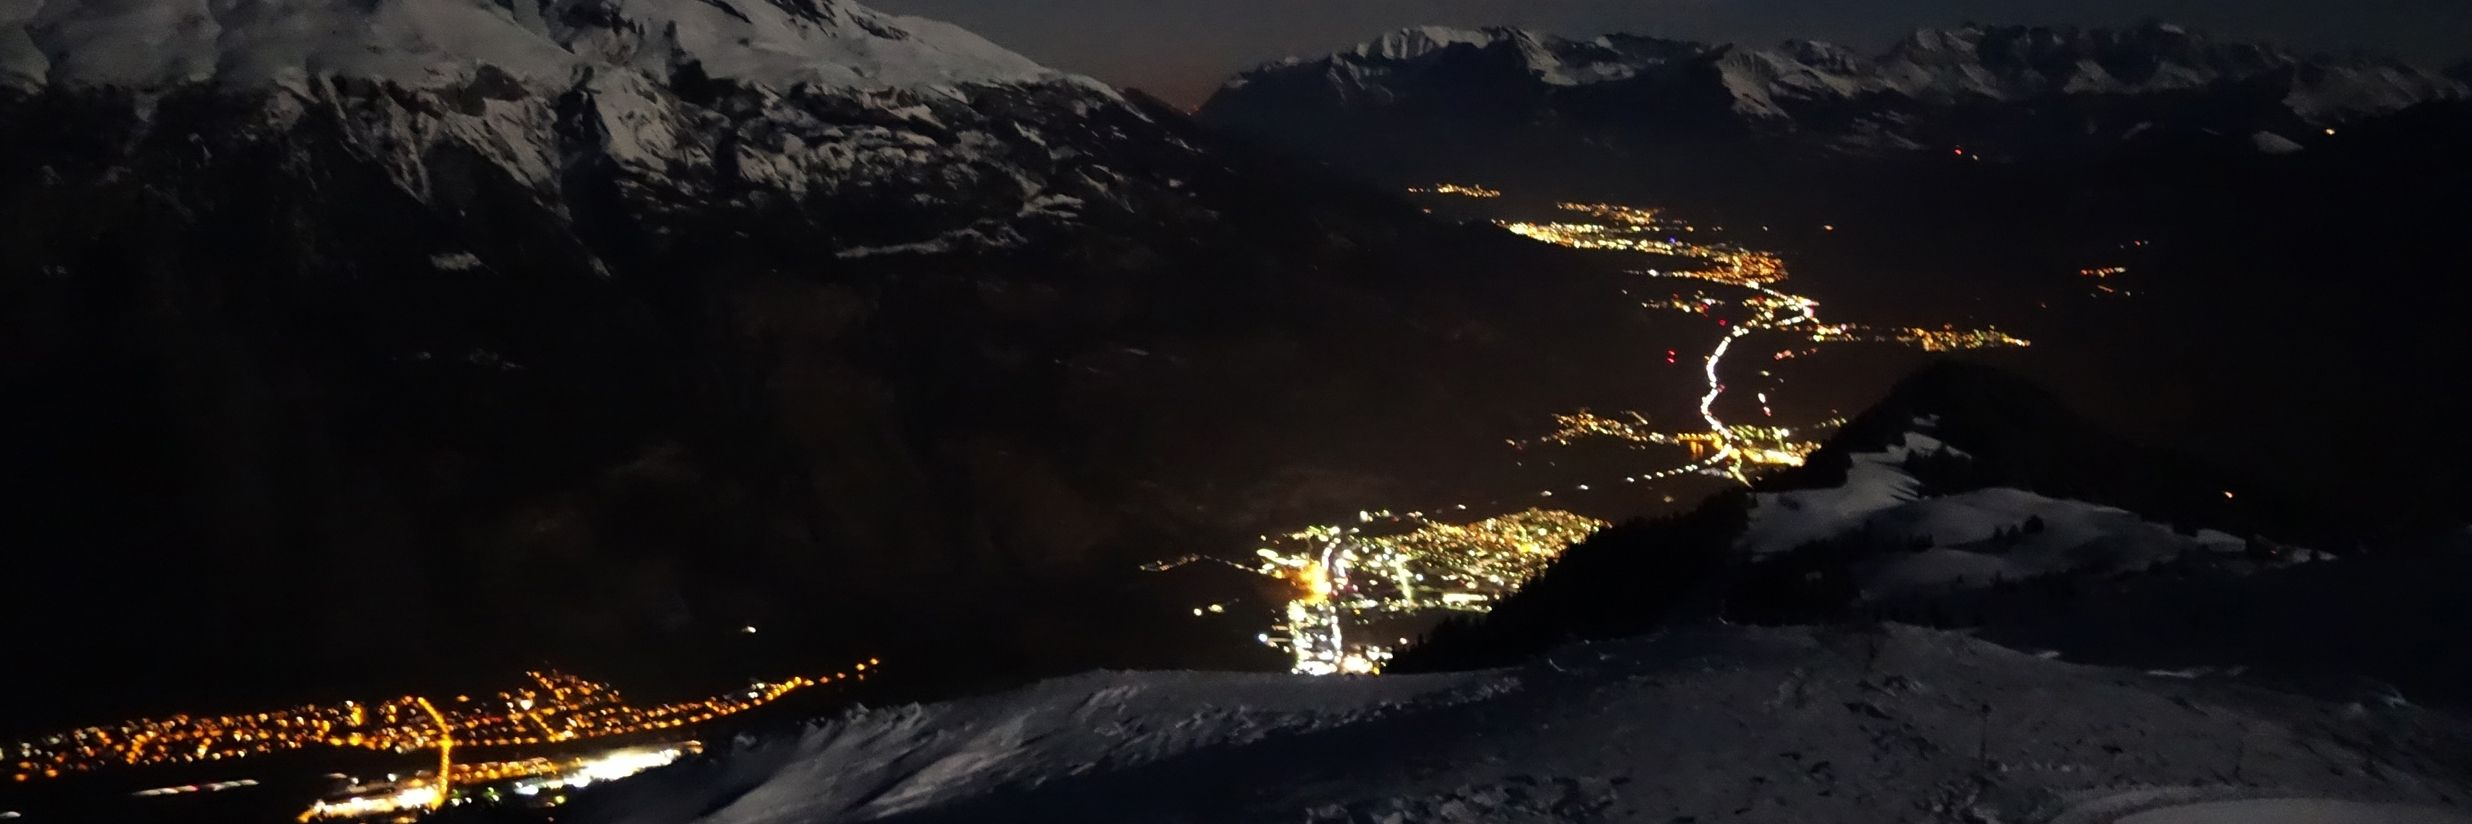 Chur by Night